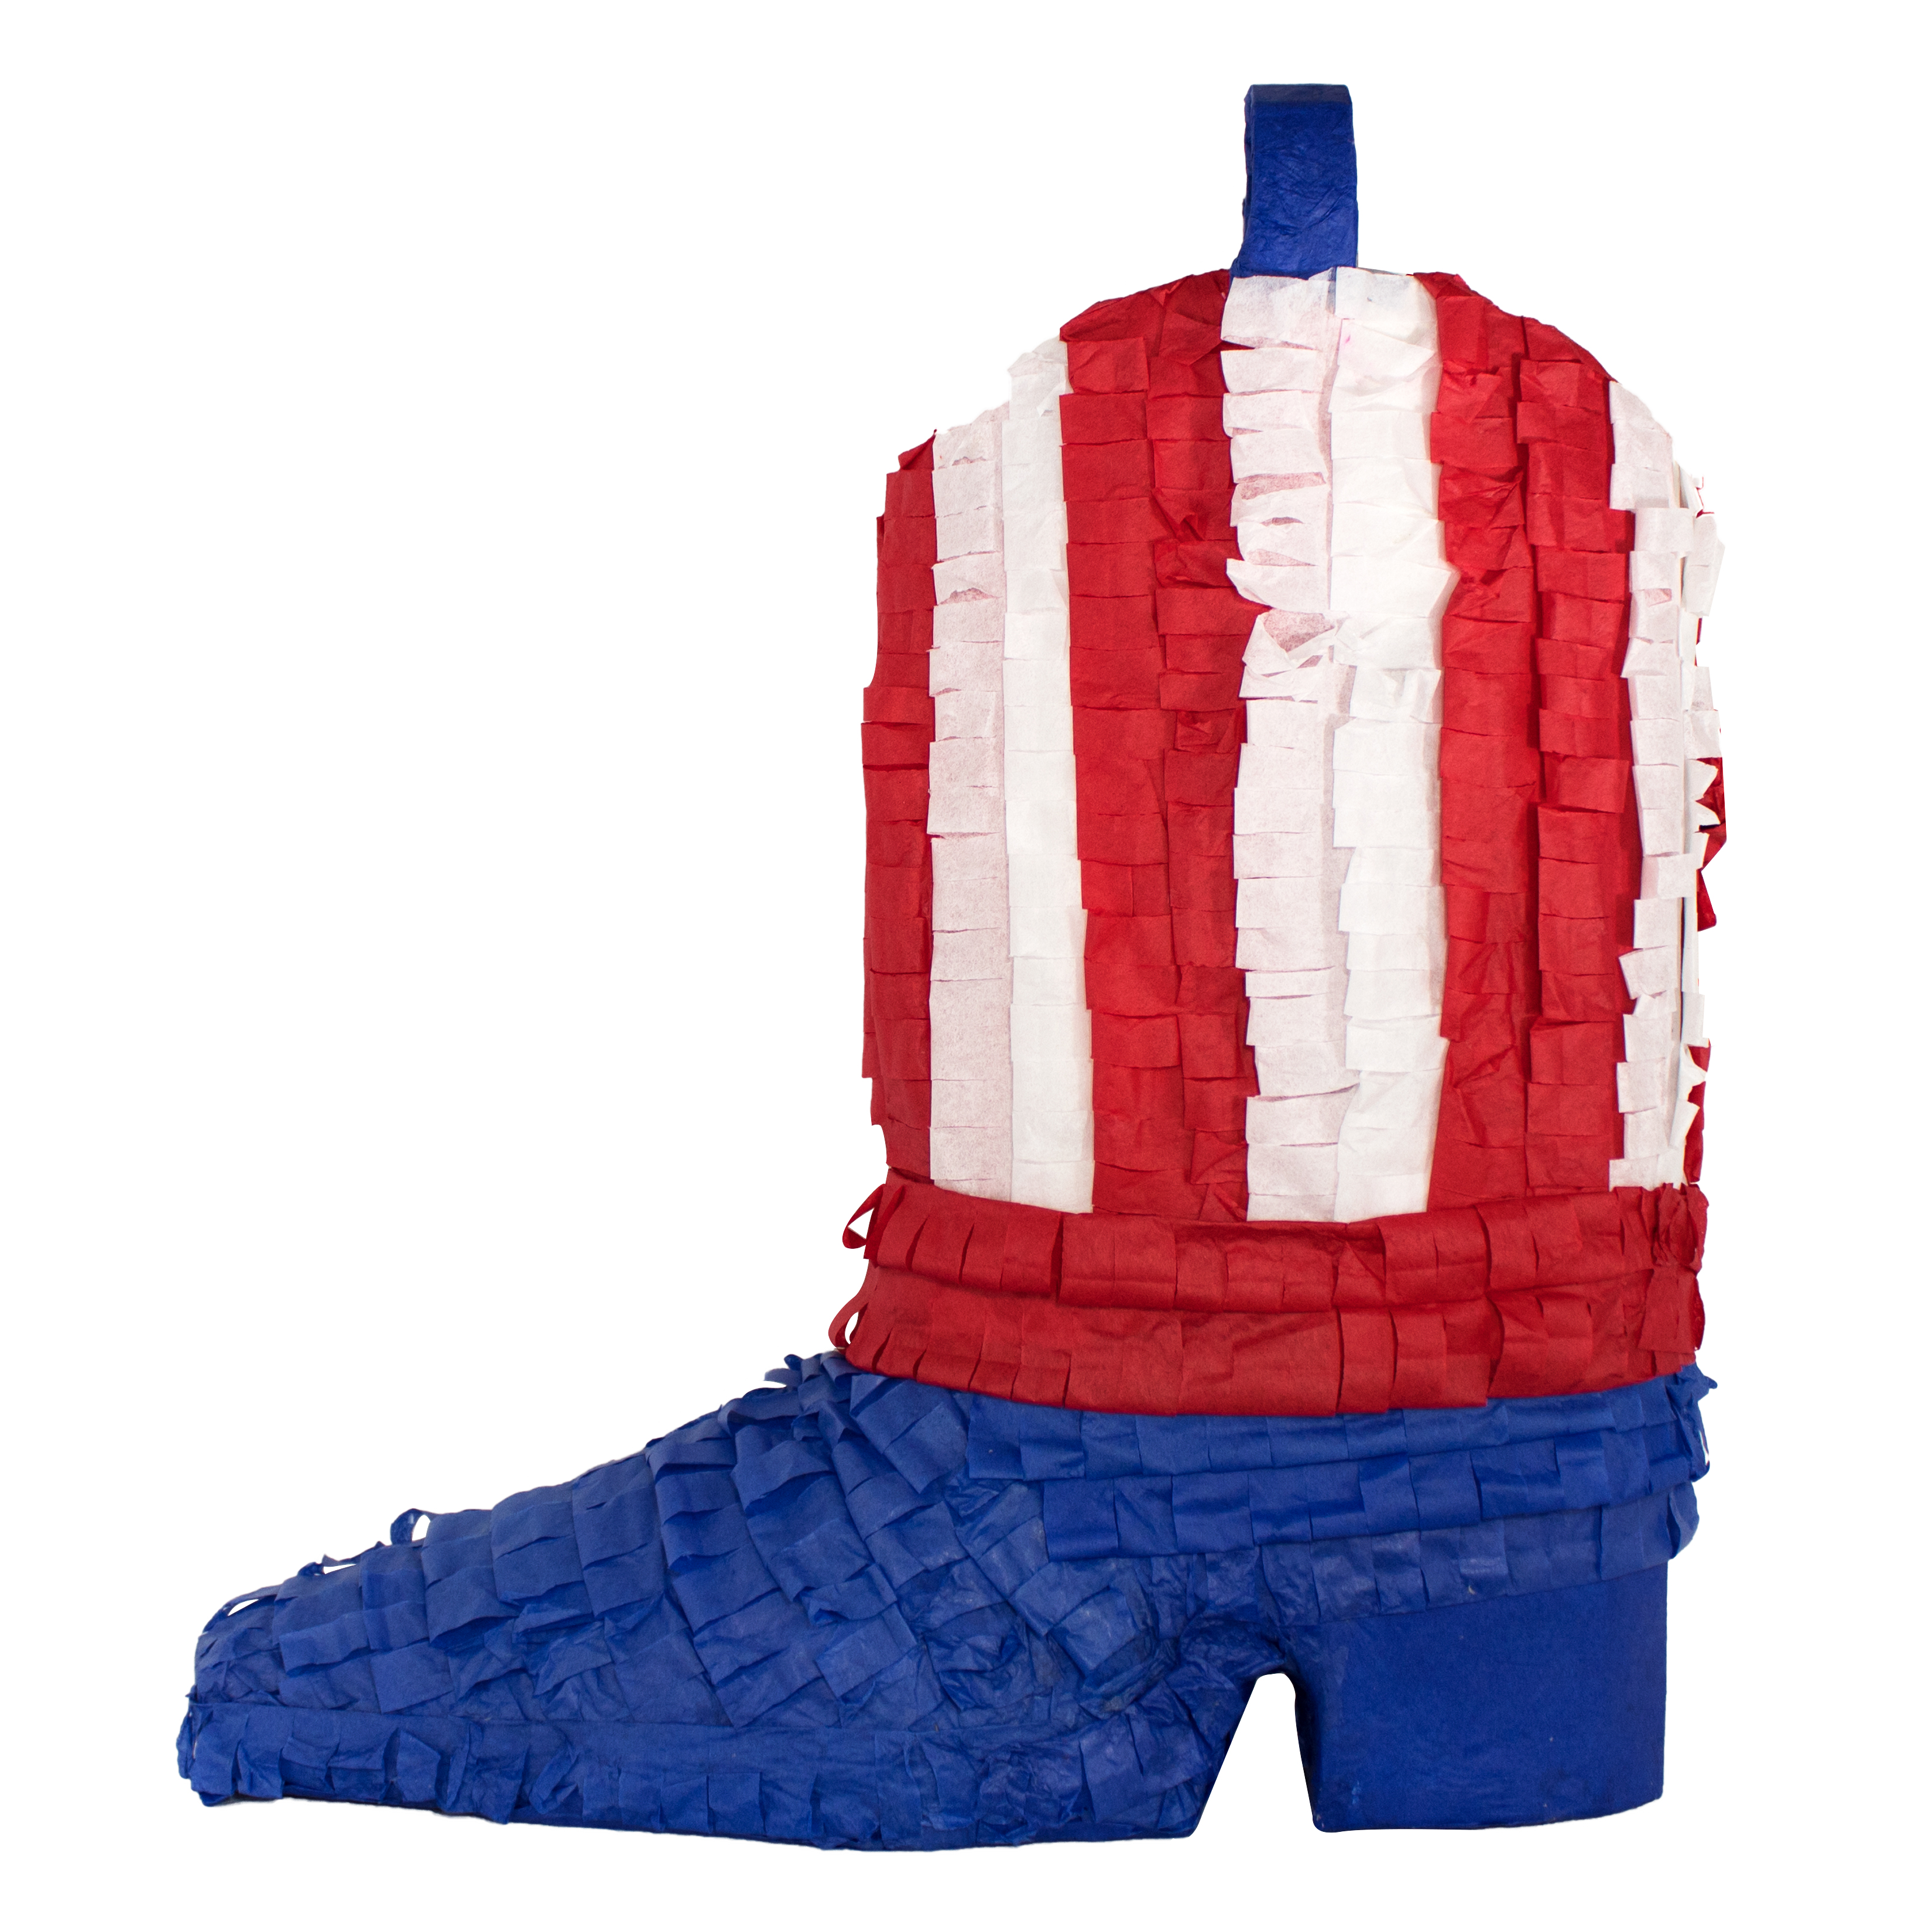 American Flag Patriotic Boot Party Pinata, Handcrafted